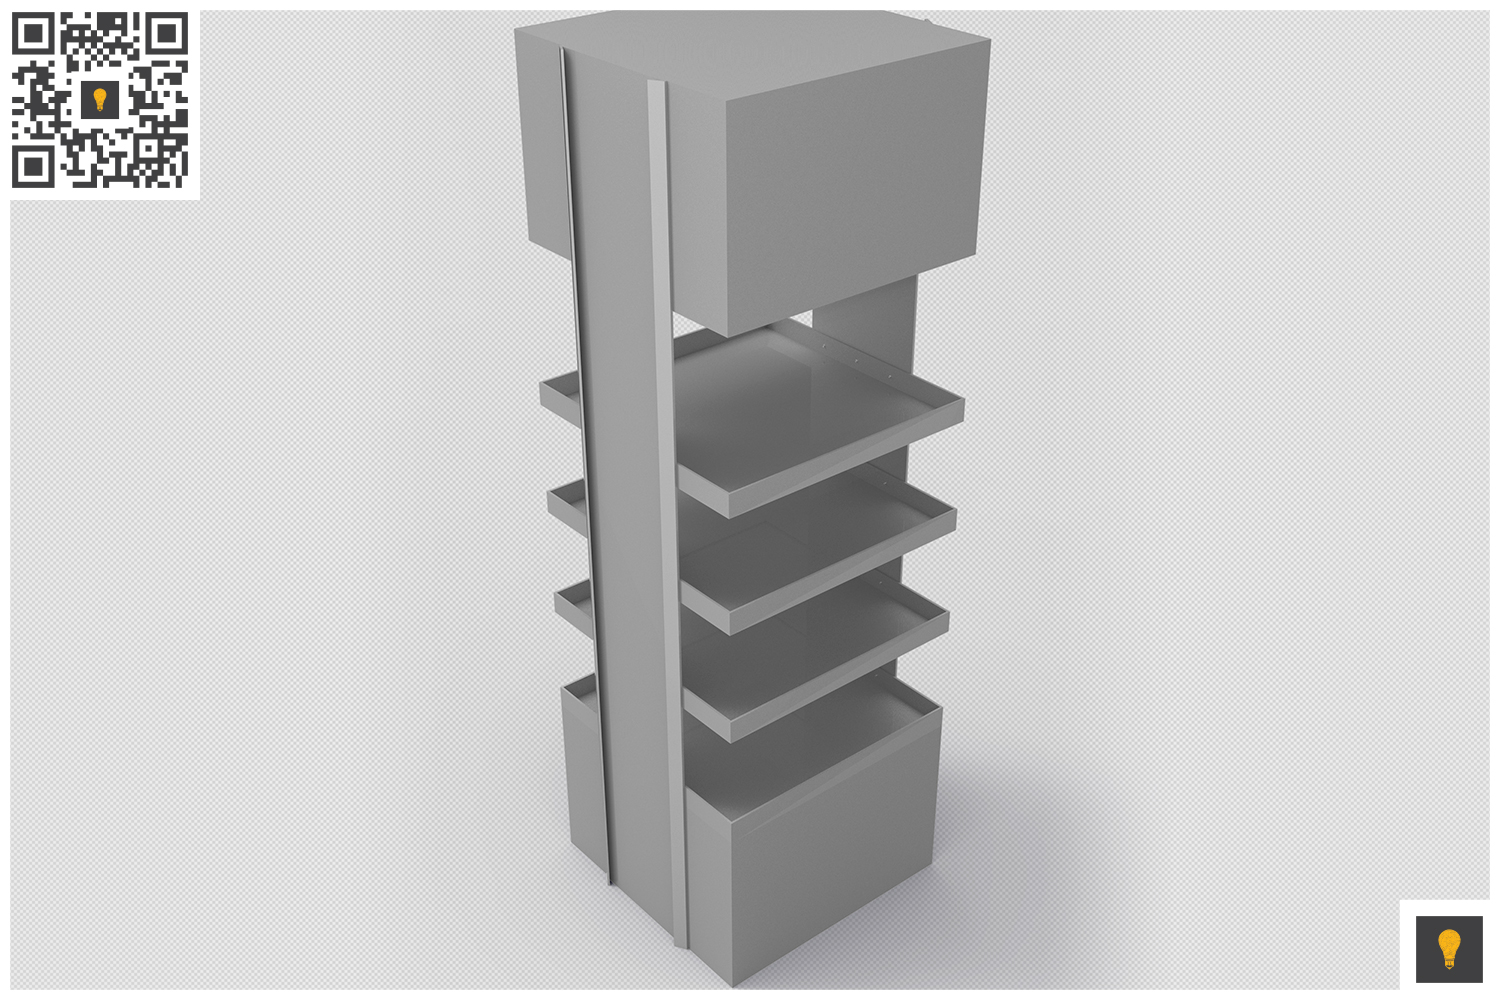 Promotional Store Shelf Stand 3D Render example image 2